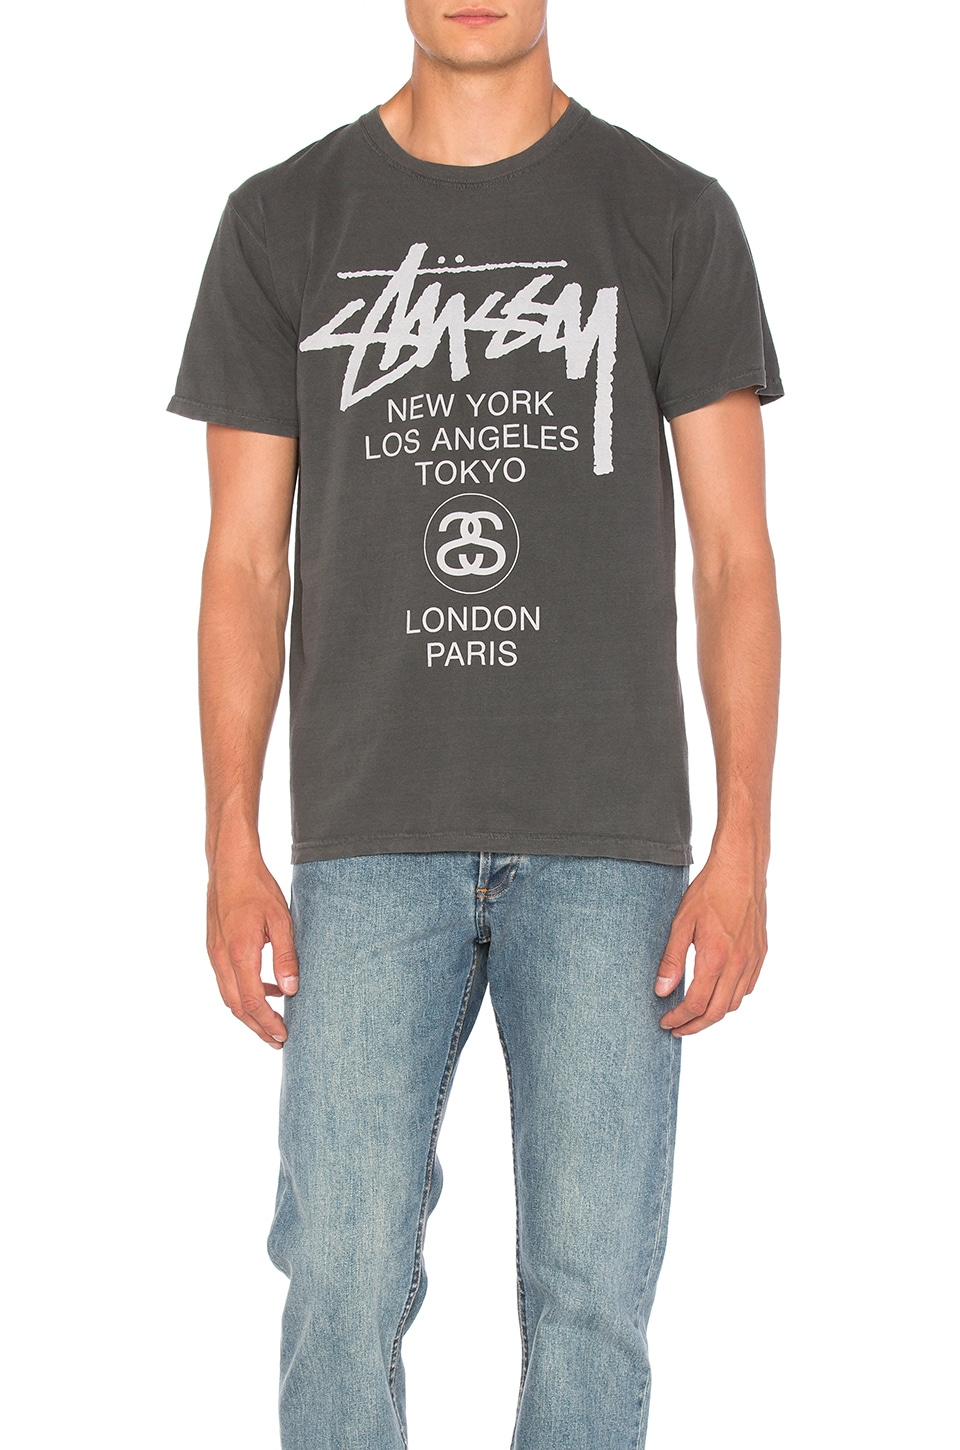 Stussy World Tour Tee in Black